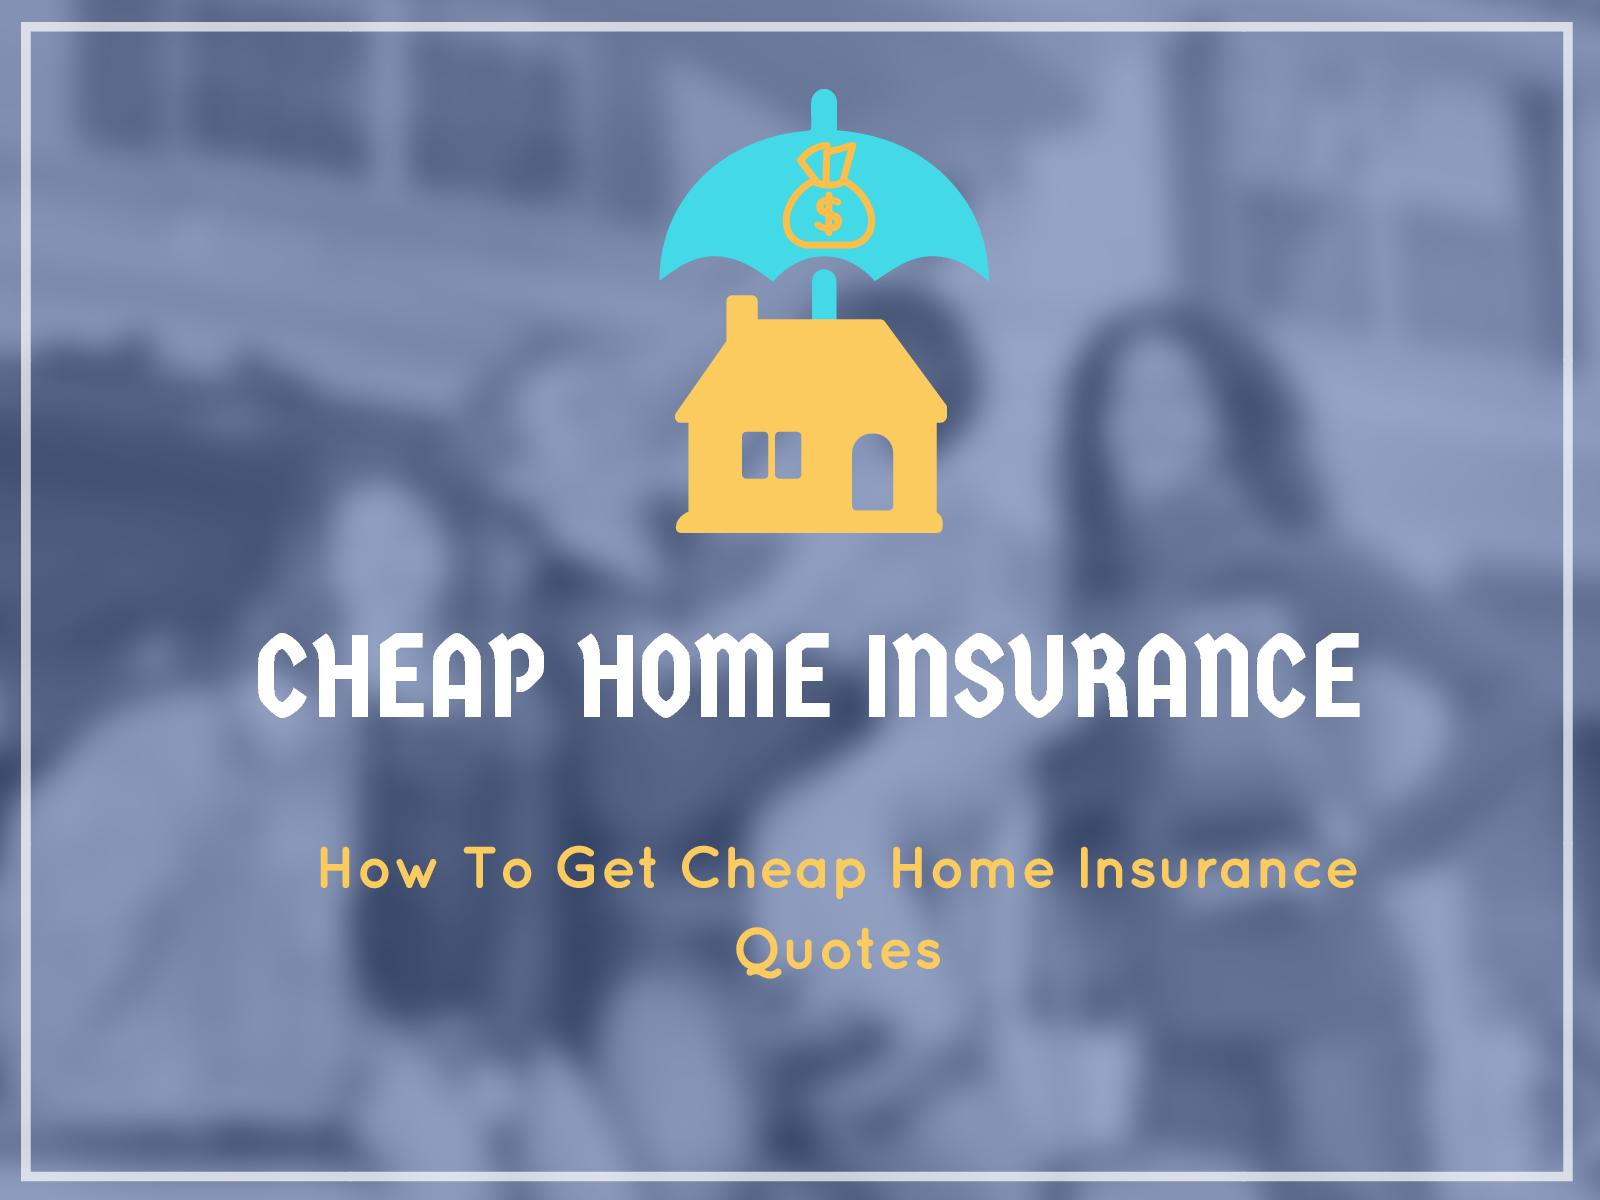 Get Cheap Insurance Calaméo How To Get Cheap Home Insurance Quotes